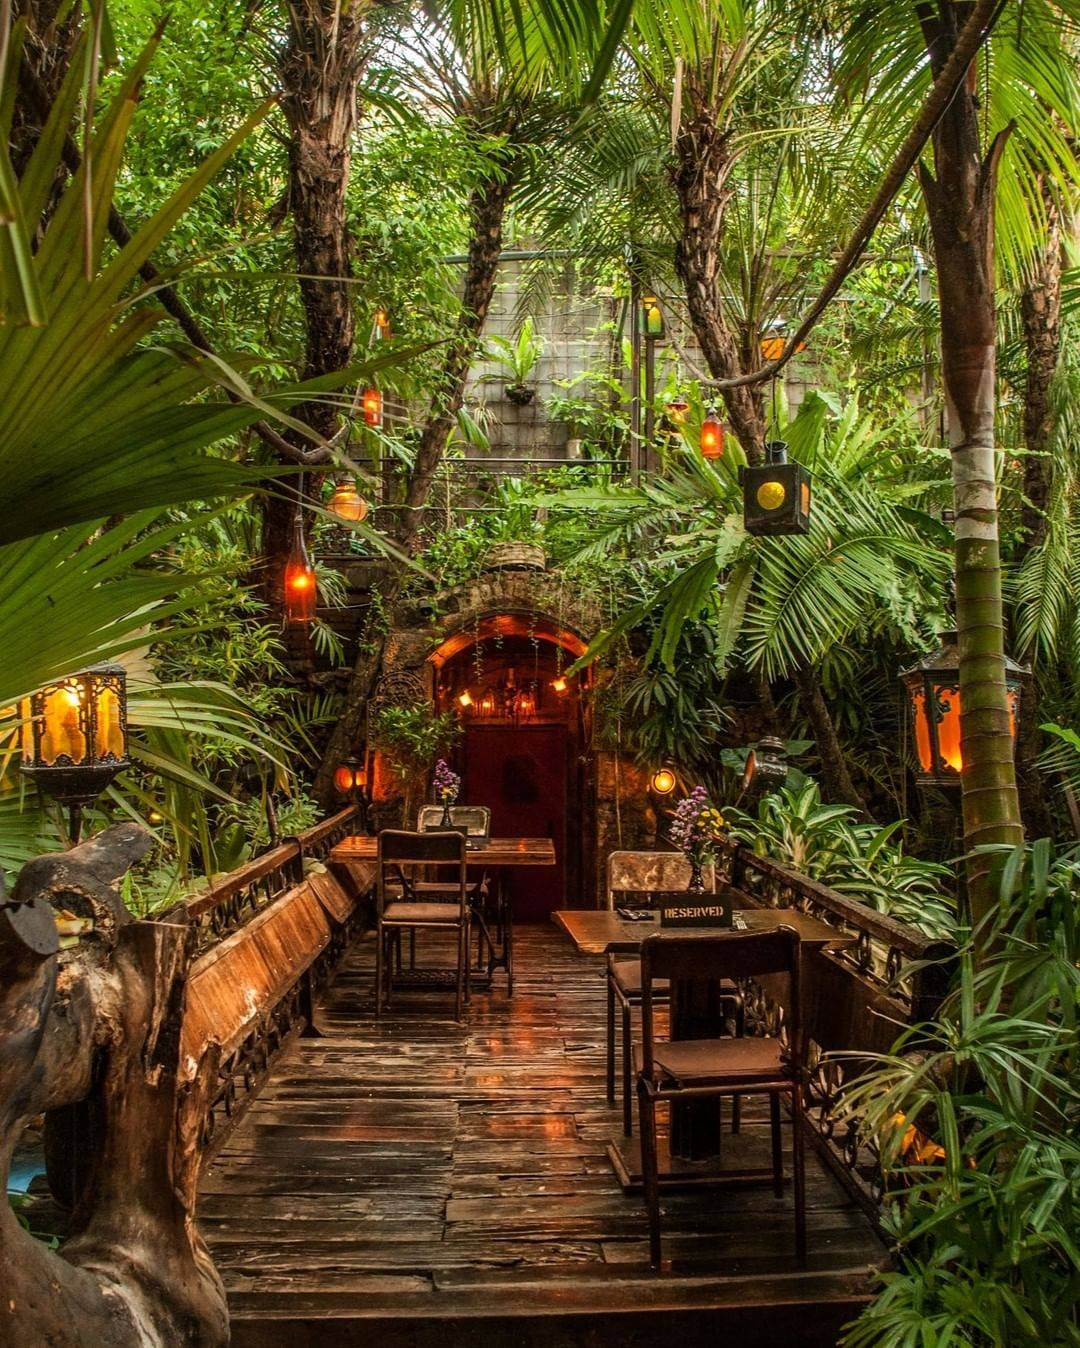 wooden furniture surrounded by tropical plants in dining area